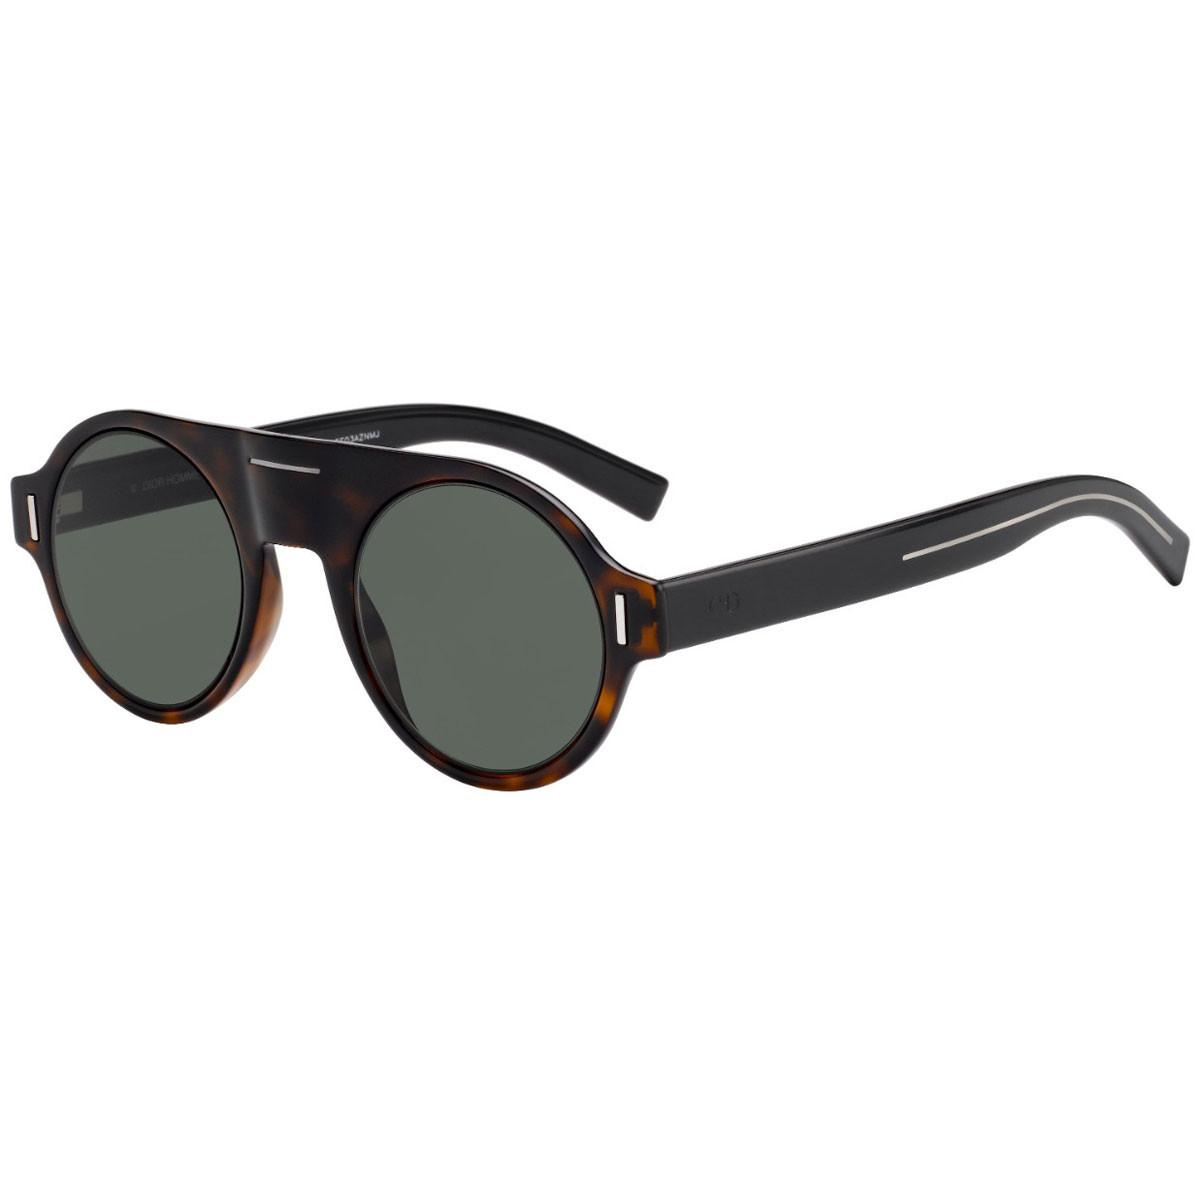 26ead28c5 DIOR HOMME FRACTION 2/S 086/O7 - Eyevil